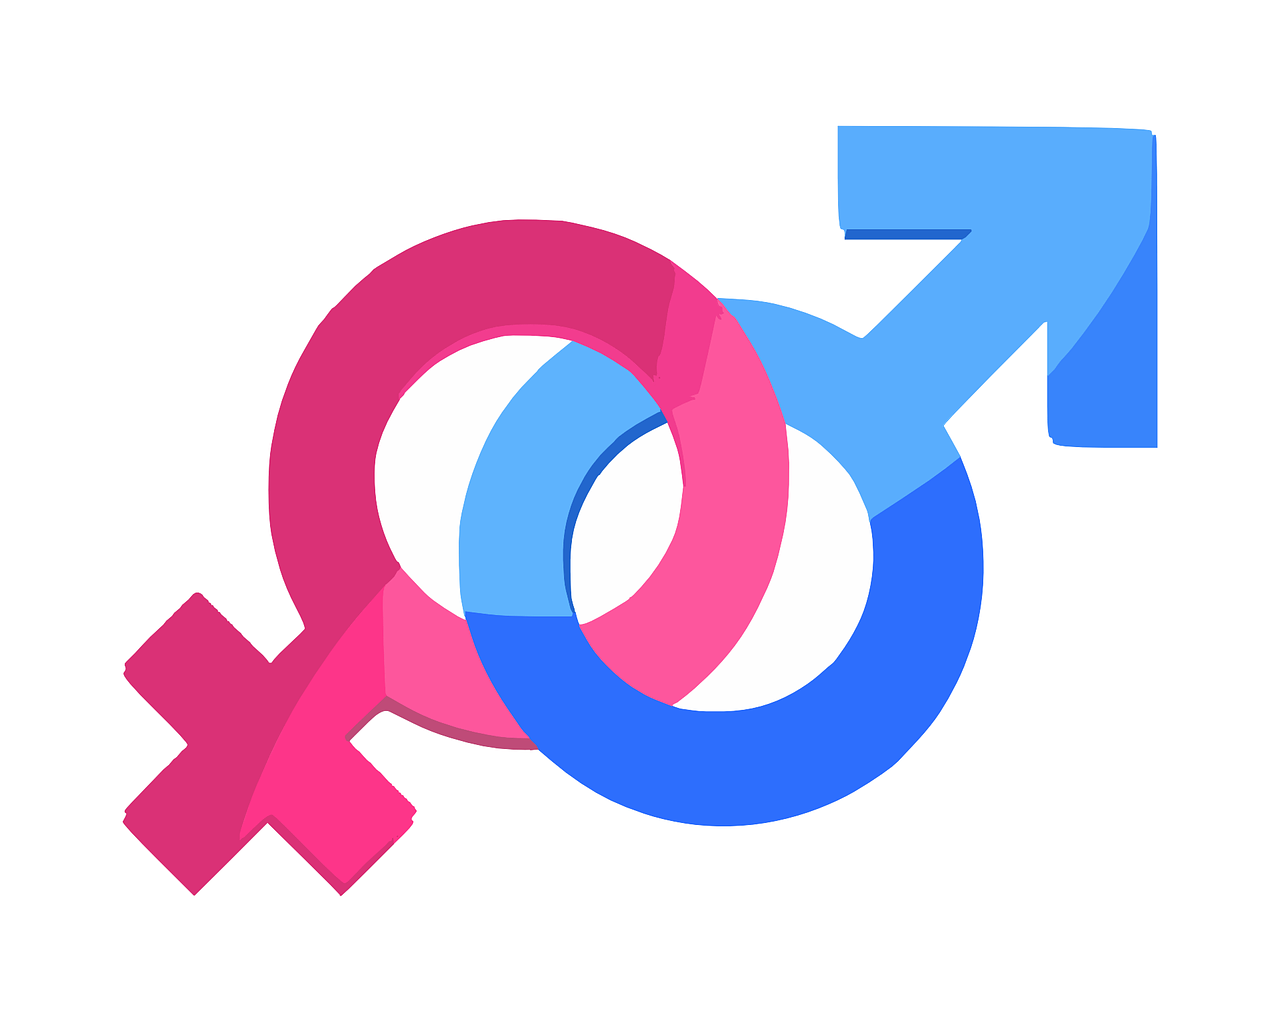 How to avoid gender bias in recruitment